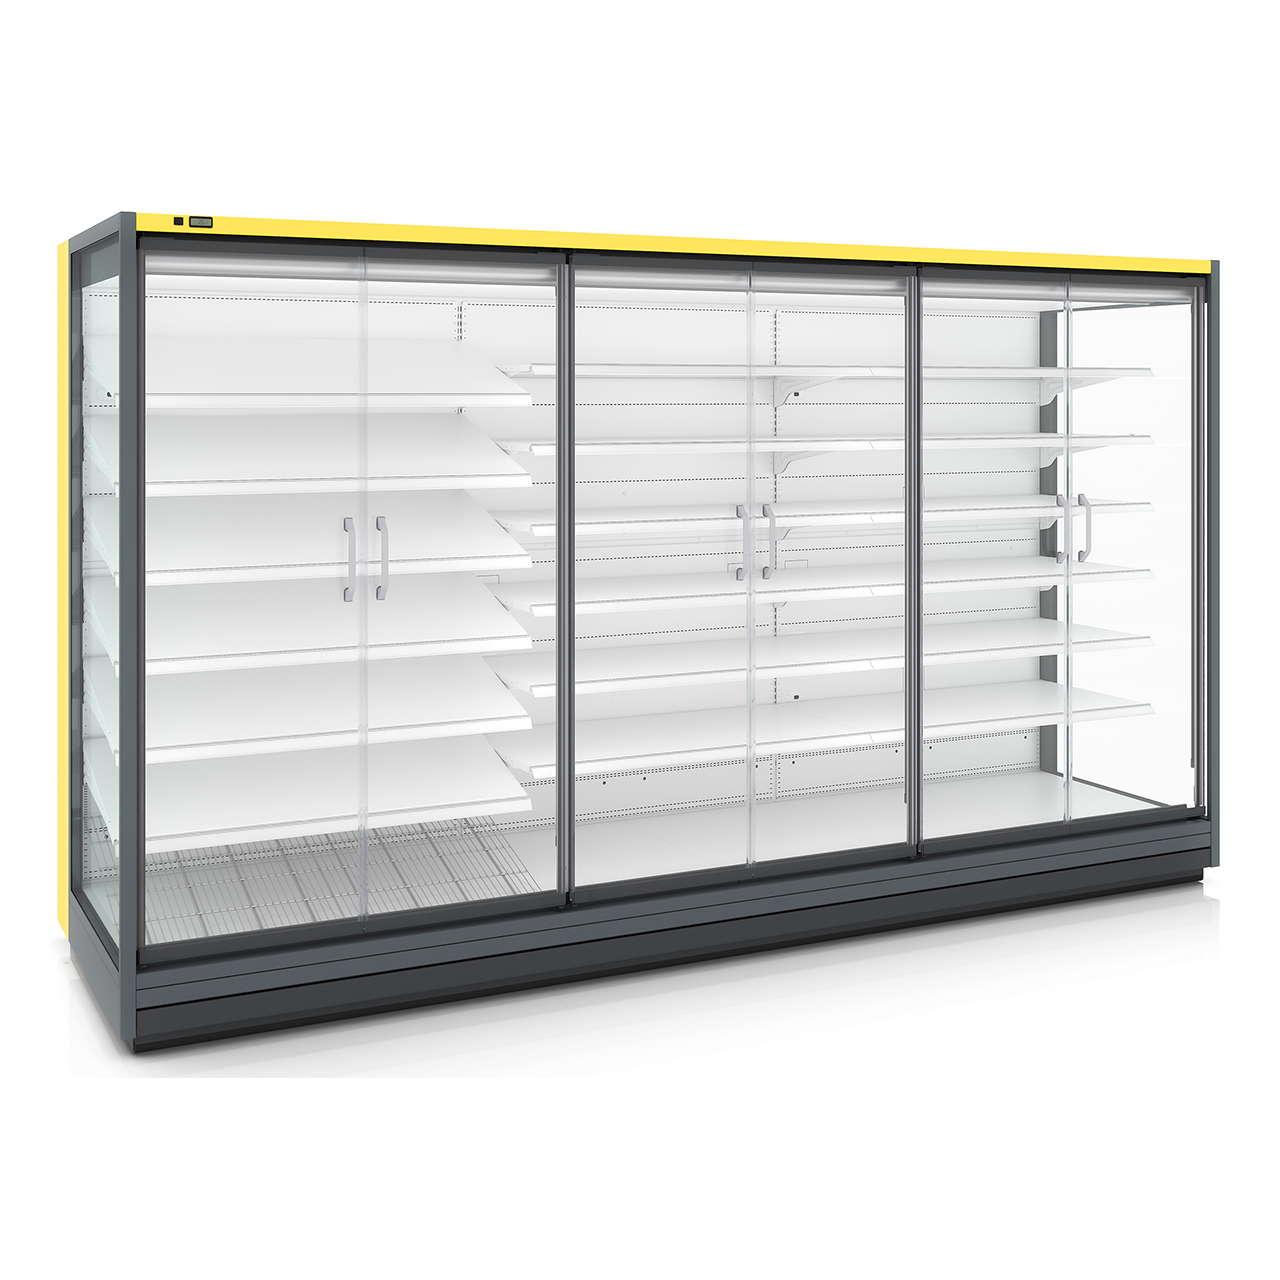 refrigerated-multideck-e6-monaxeco-ulf-D